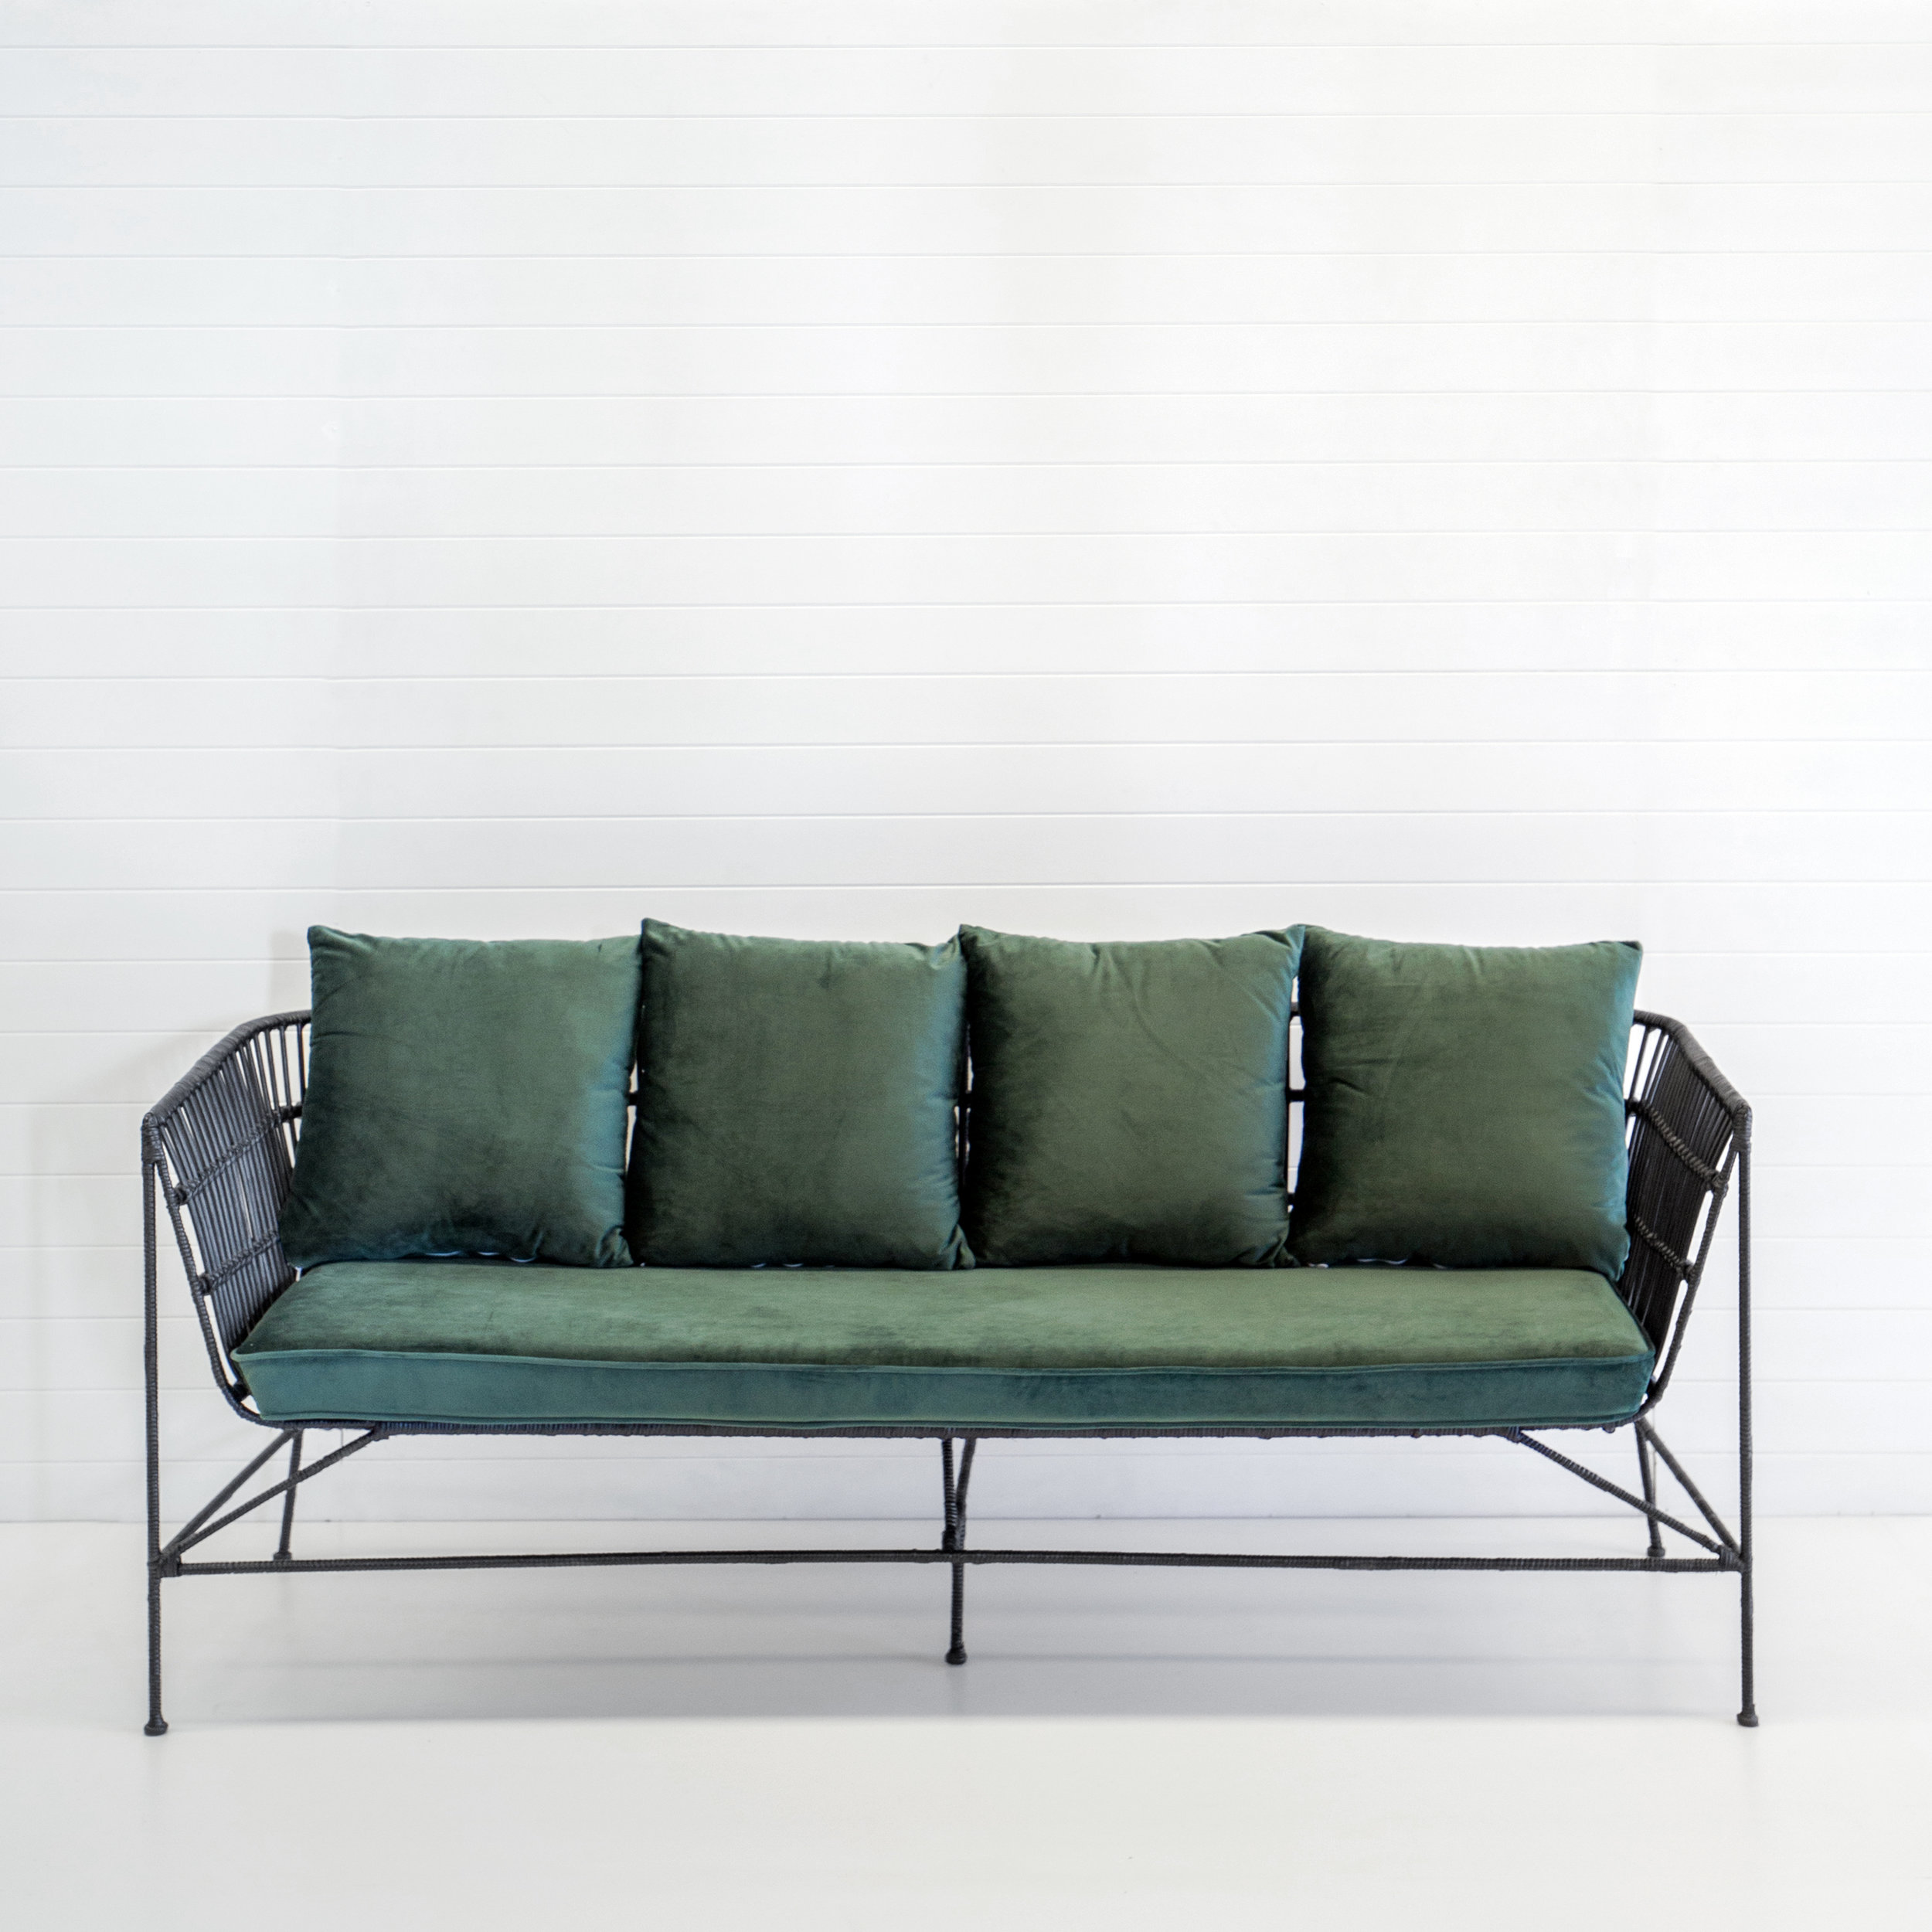 INDIE BLACK 3-SEATER SOFA WITH EMERALD VELVET CUSHIONS